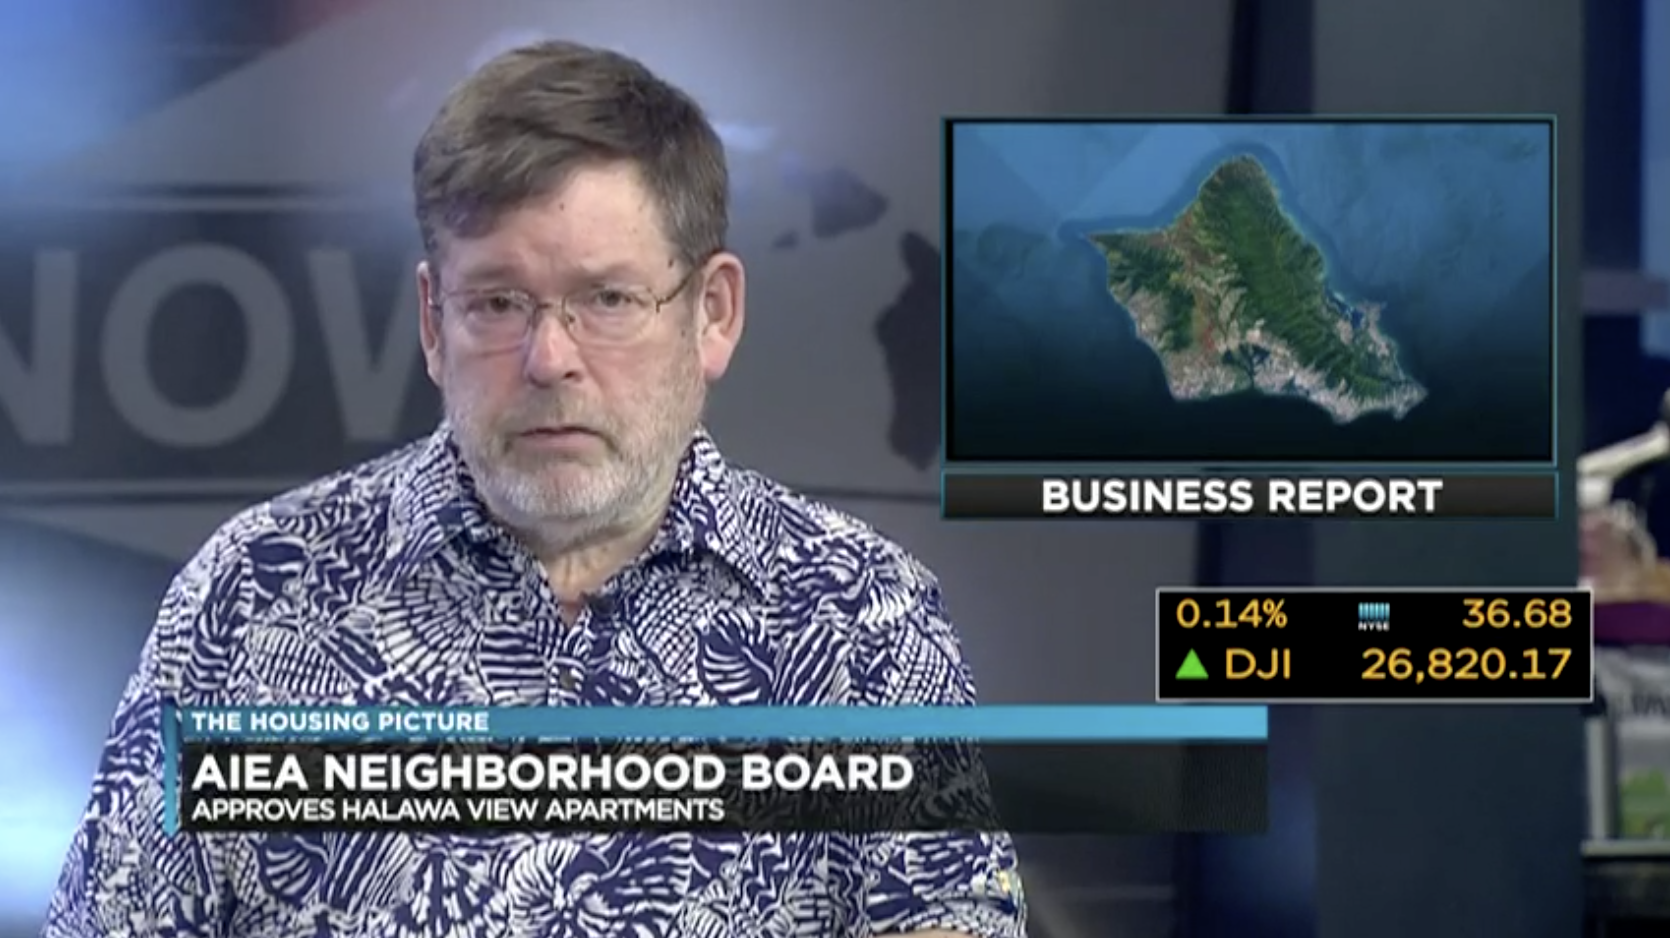 Business Report: Aiea neighborhood board approves Halawa View Apartments